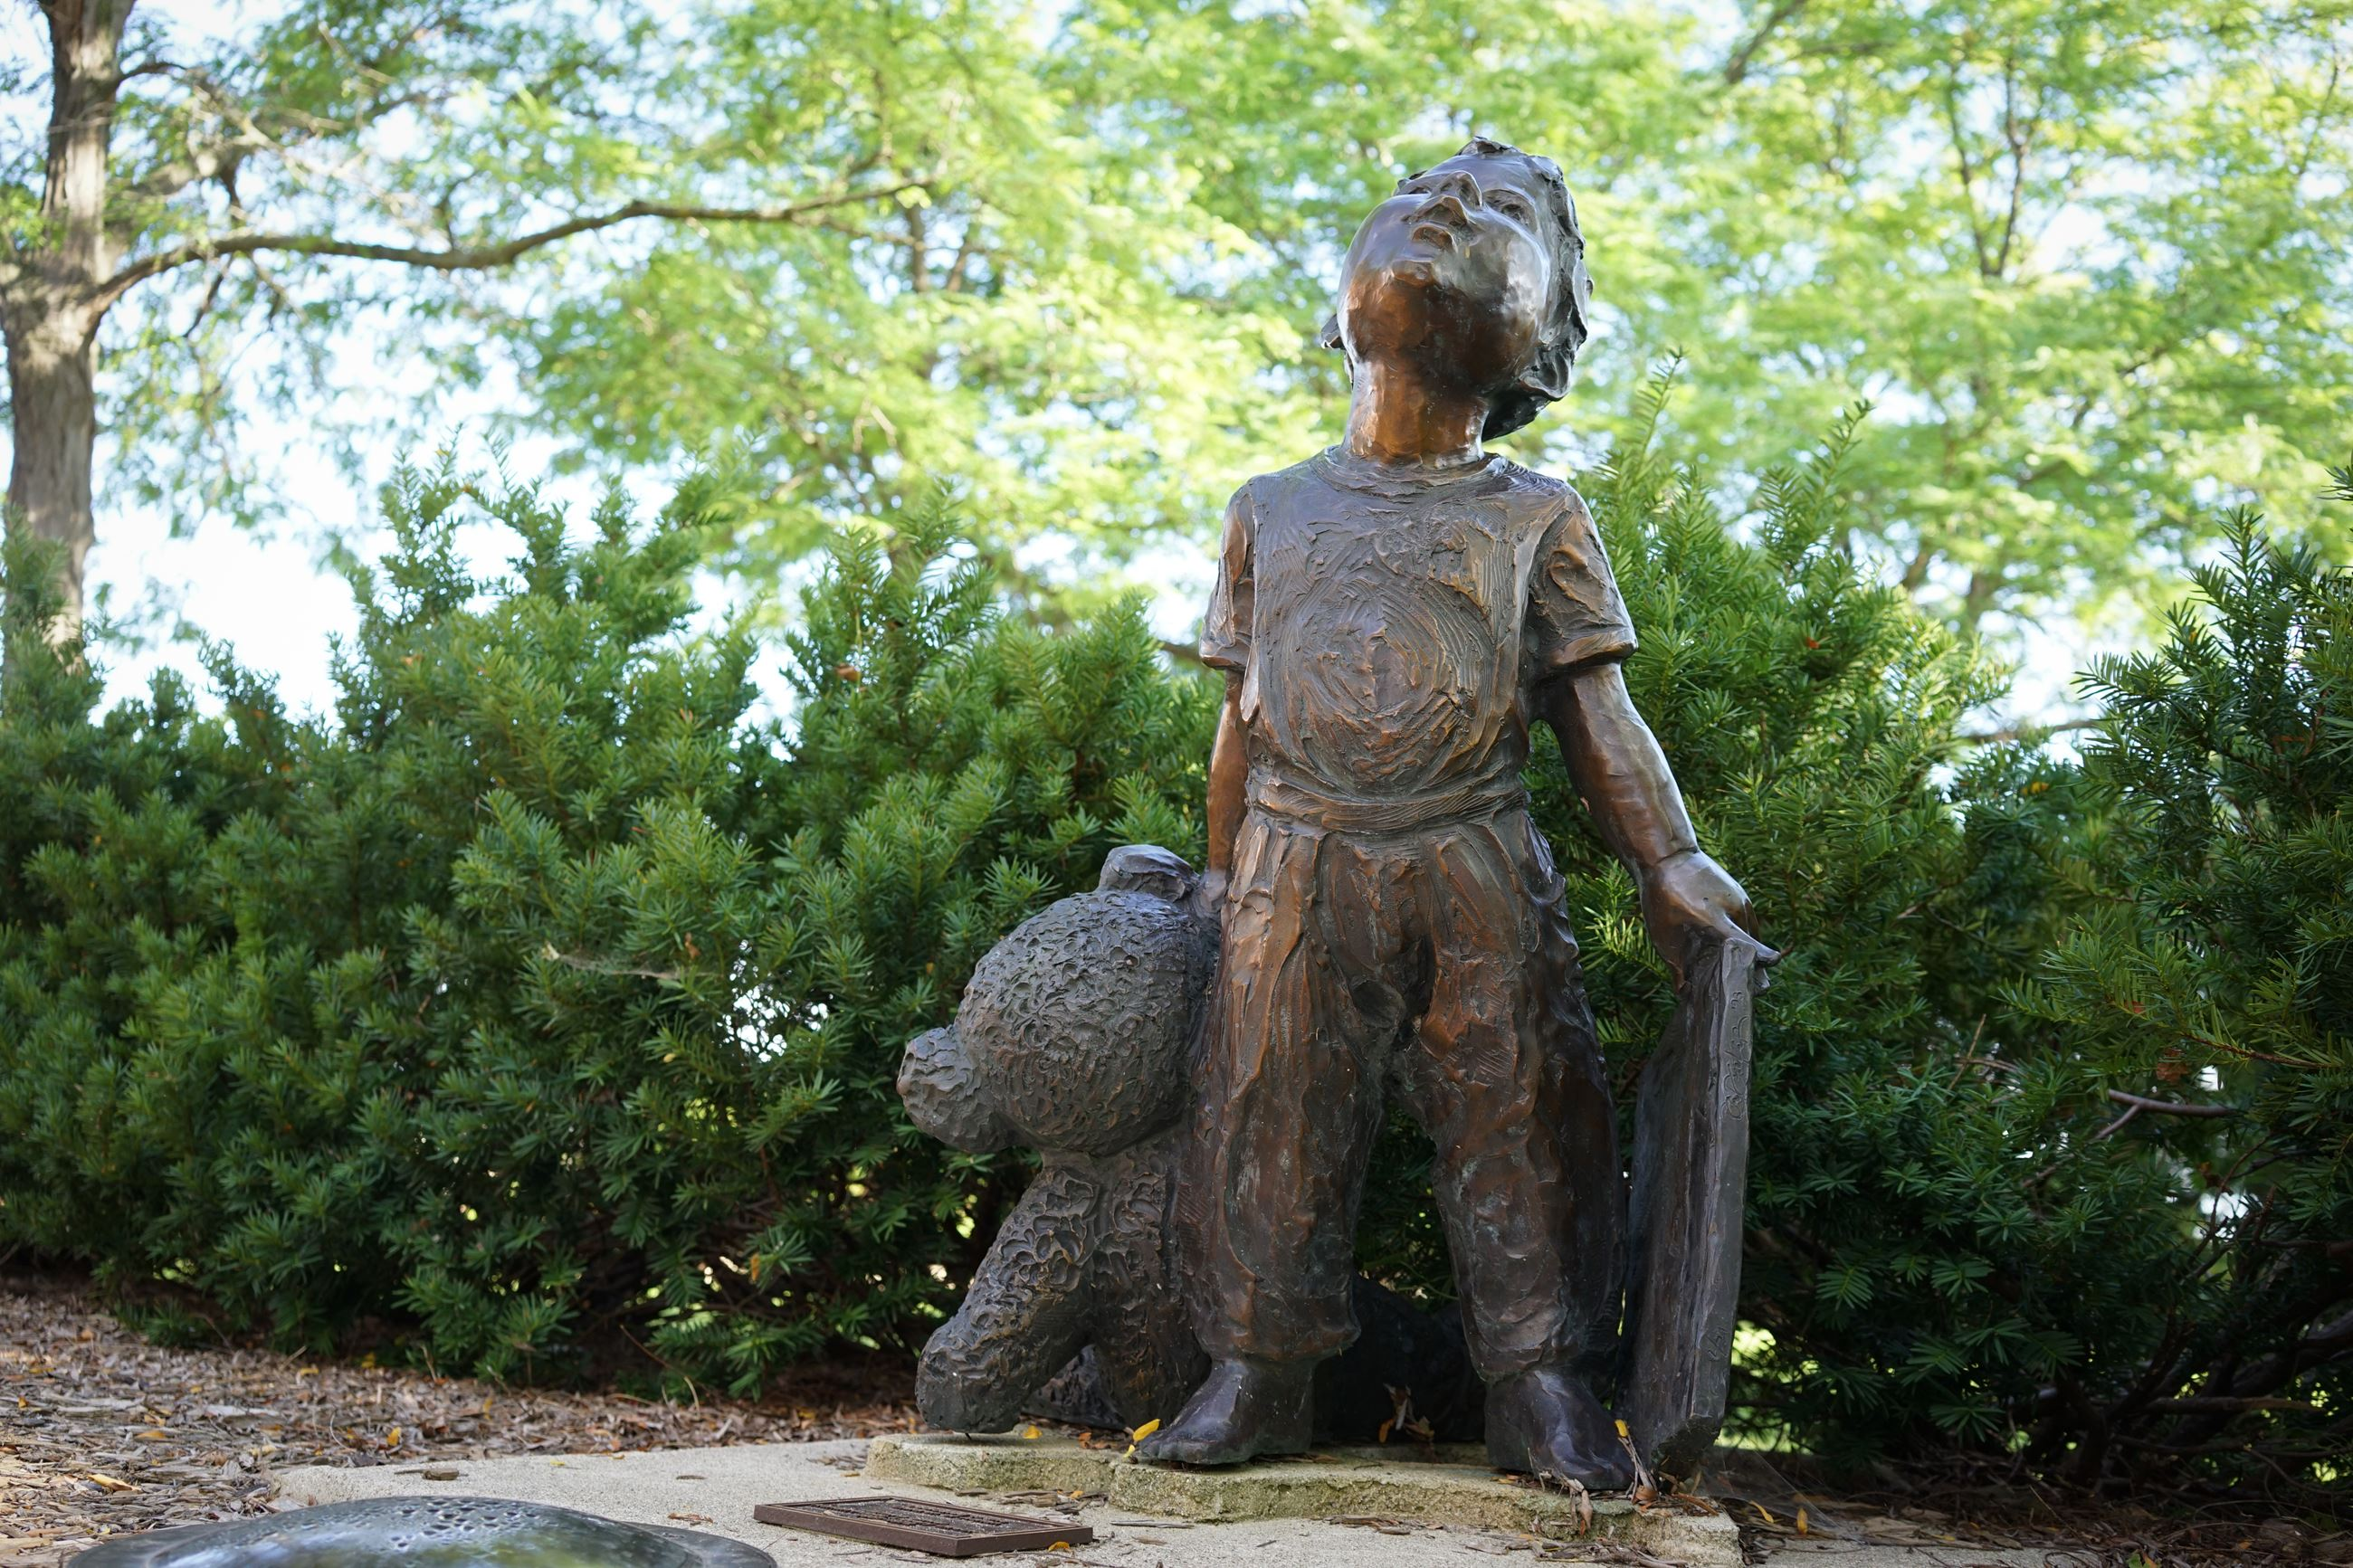 Image of bronze statue of a small boy and a bear cub.